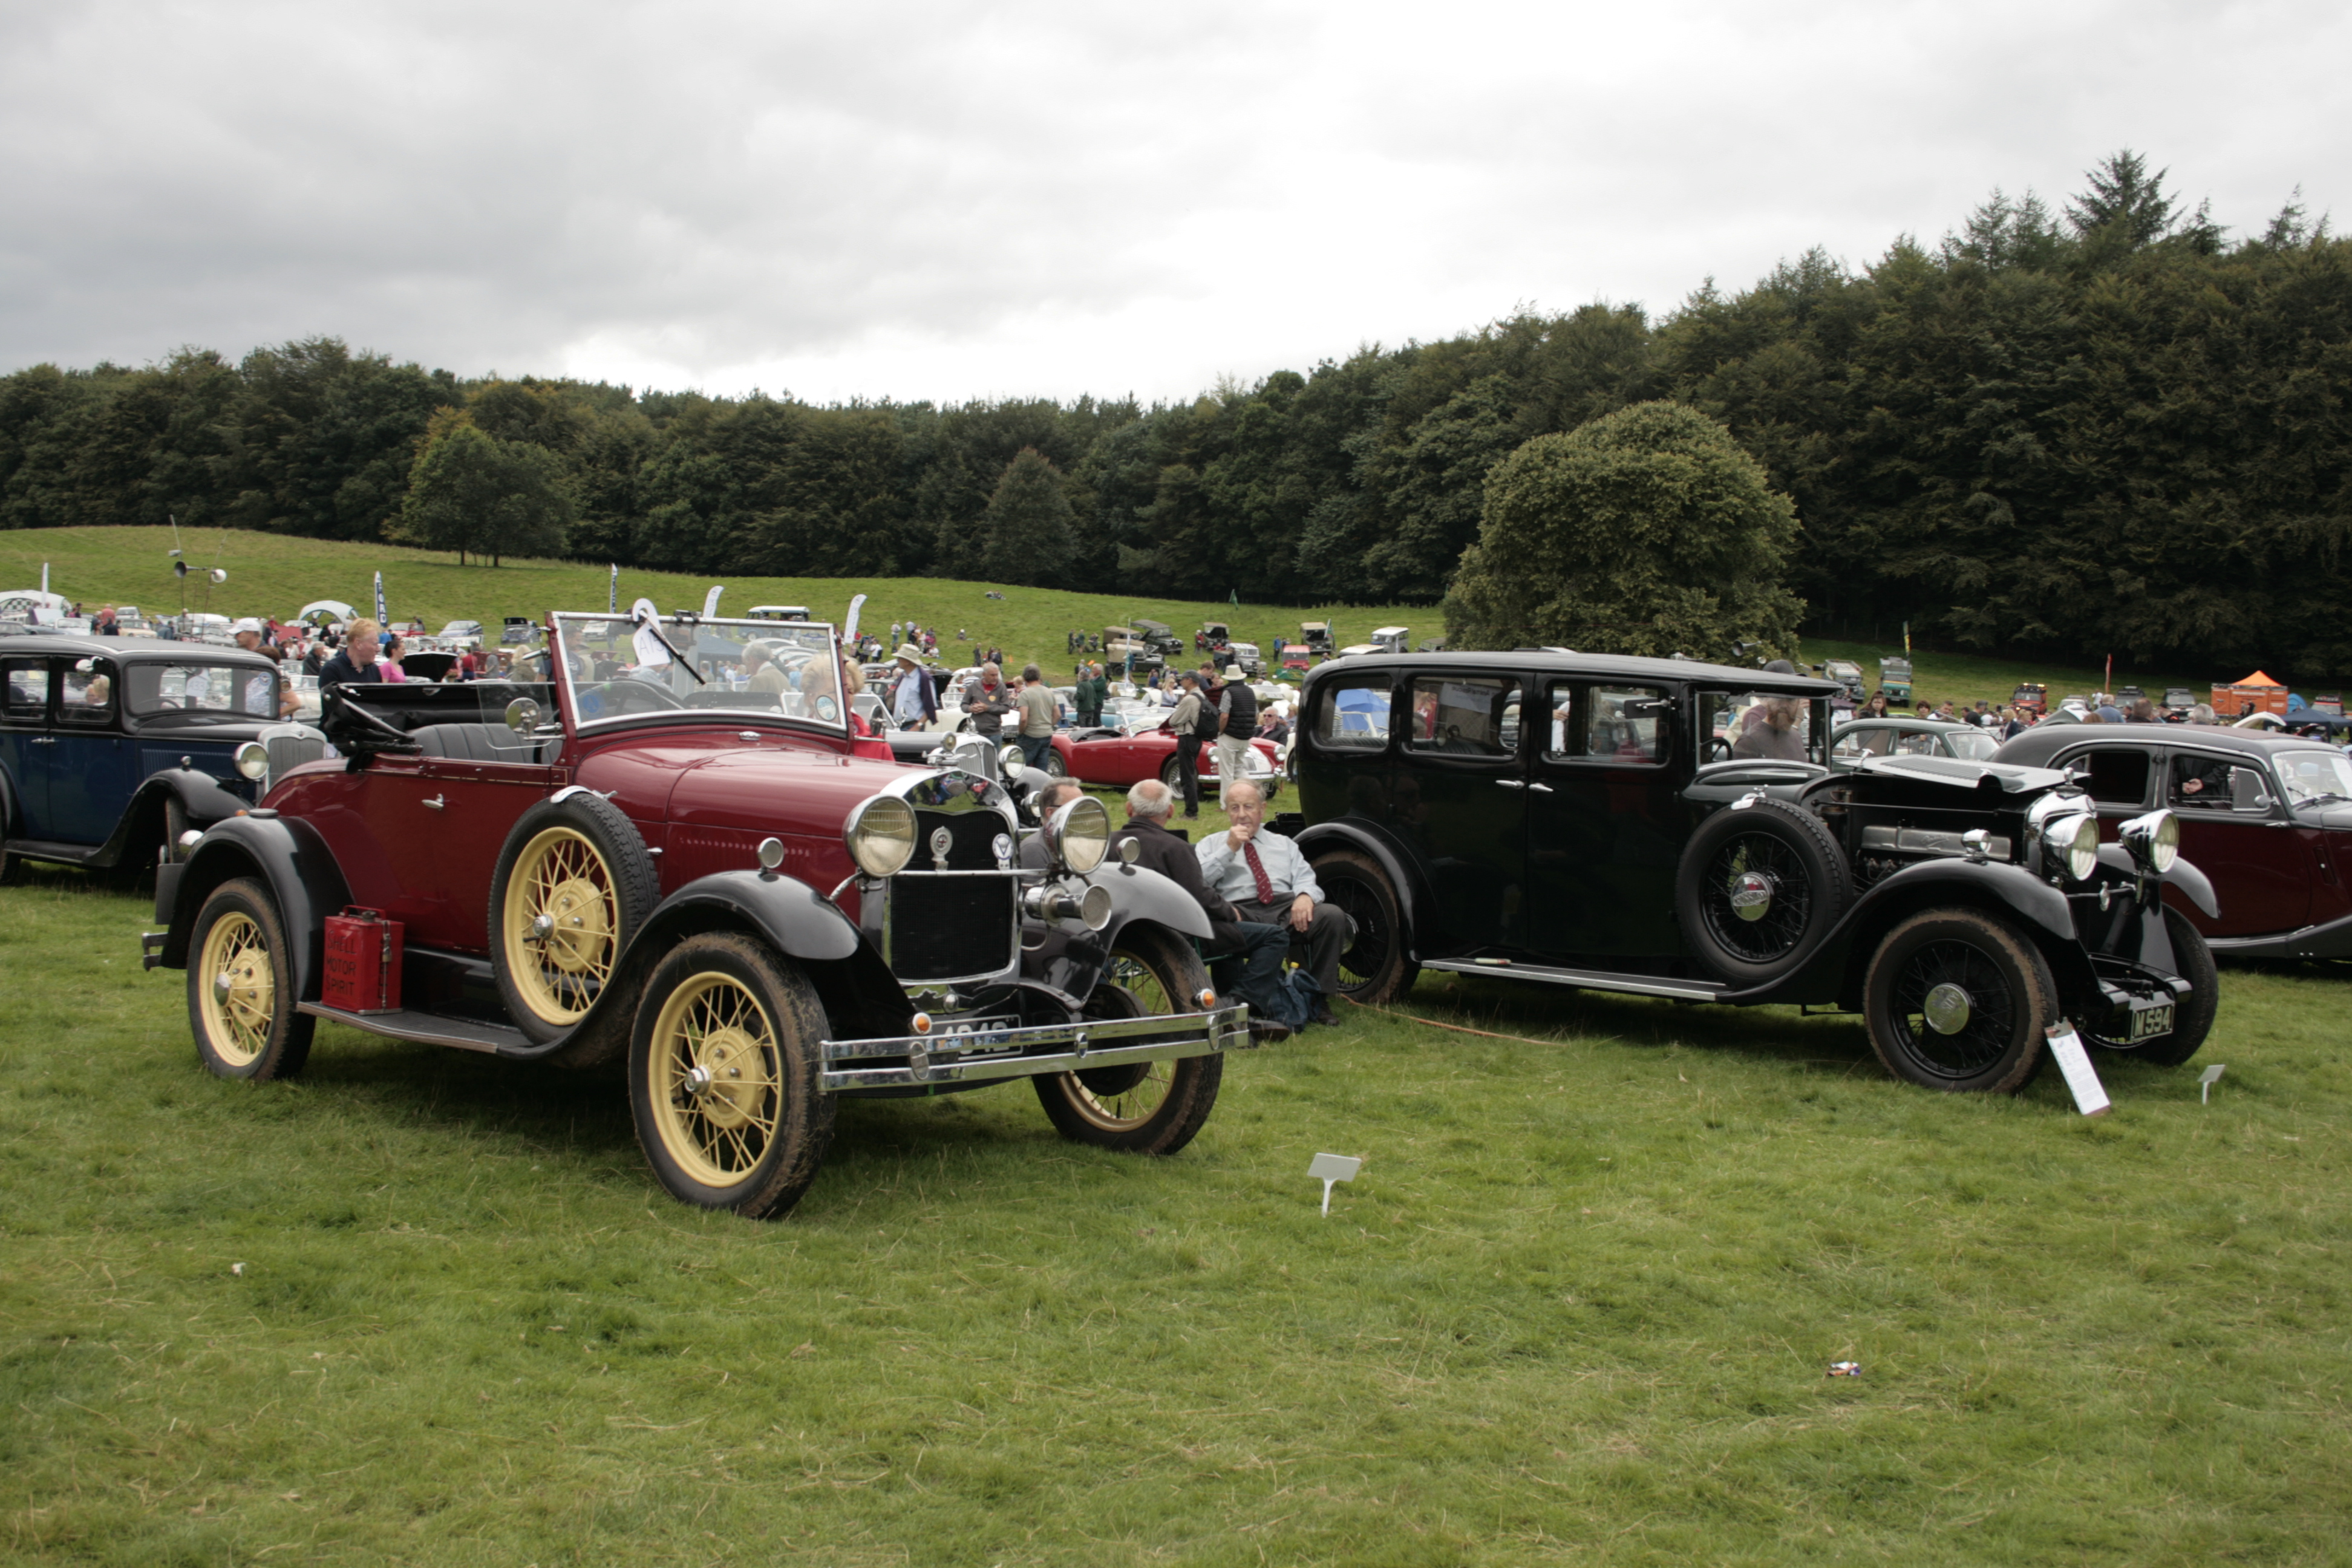 Classic Car Show At Dalemain The Dalemain Estate - Antique car show near me today